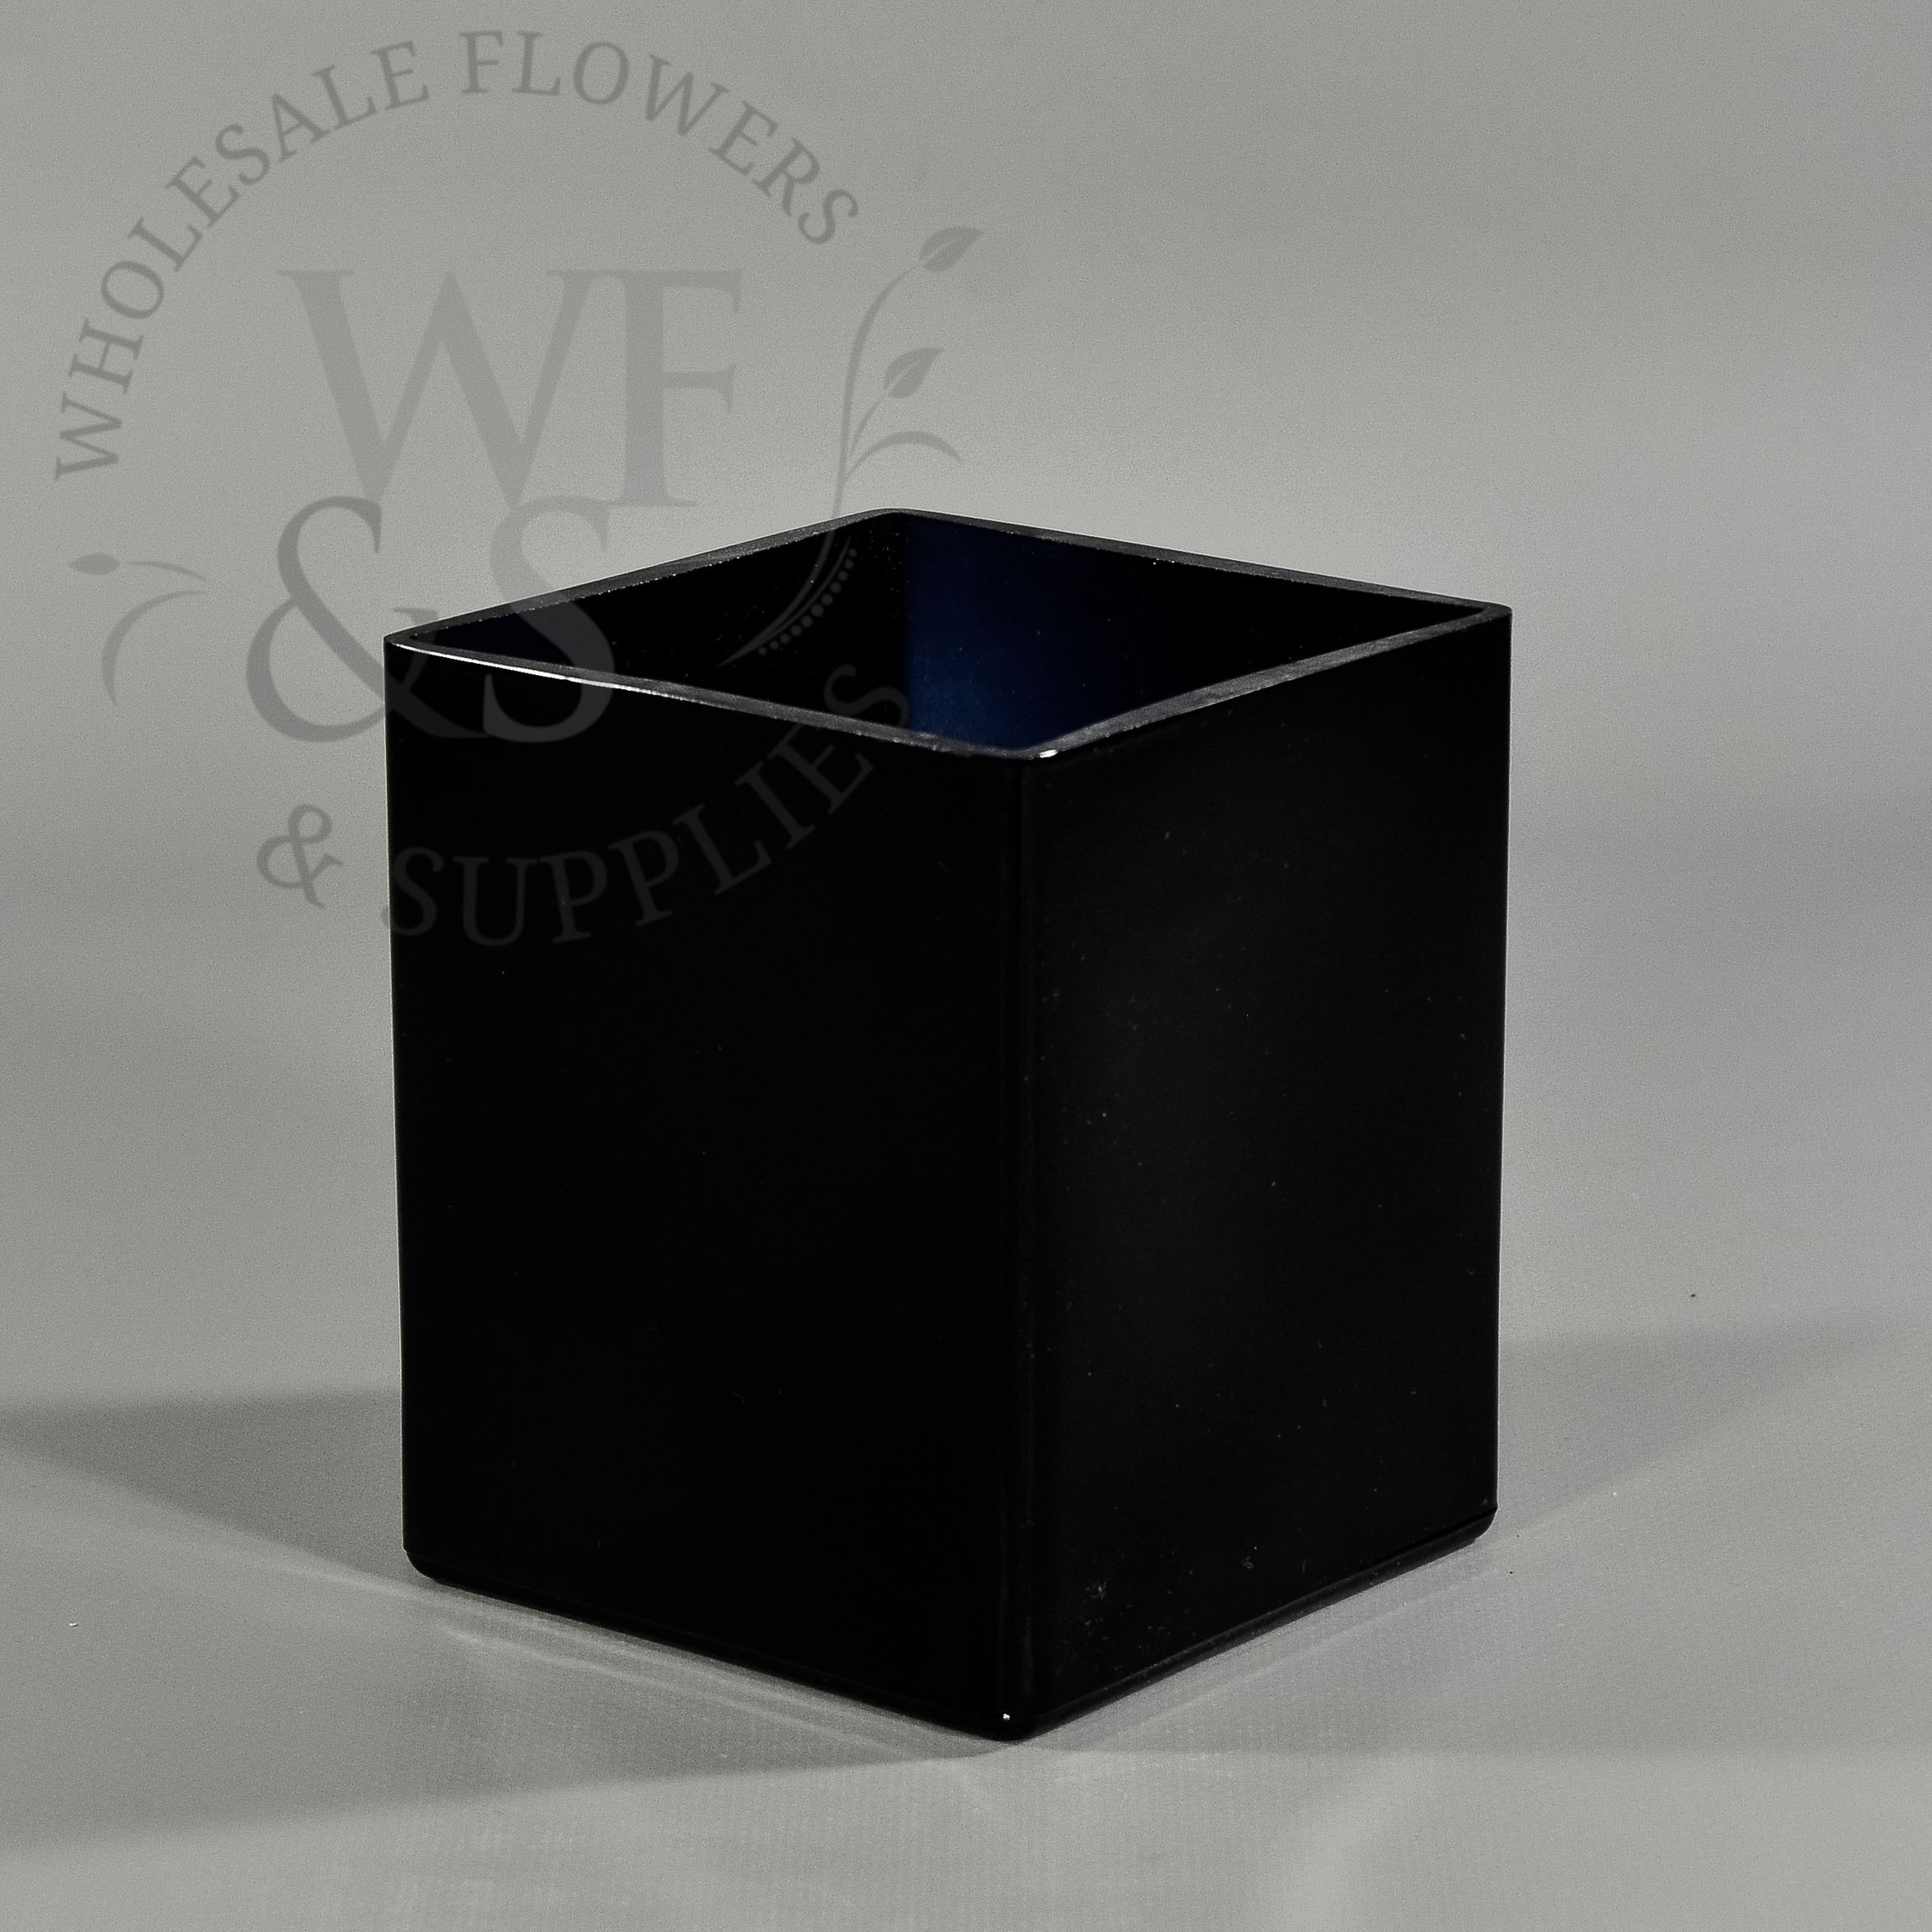 Cube Glass Vase 6x6x6 Of Square Glass Vases wholesale Flowers and Supplies Inside Cube Glass Vase In Black